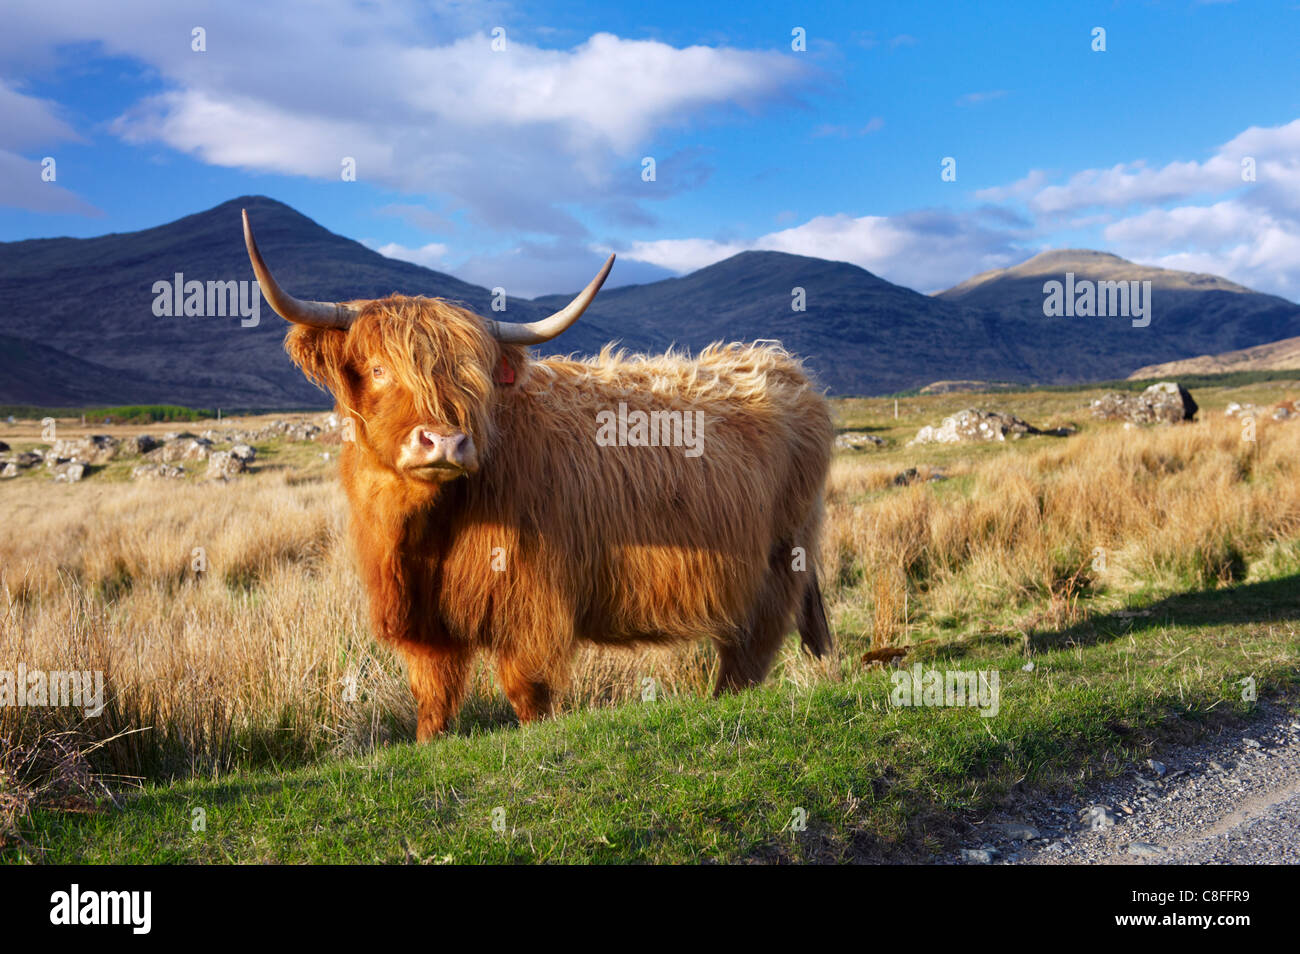 Highland cattle, Isle of Mull, Inner Hebrides, Scotland, United Kingdom - Stock Image